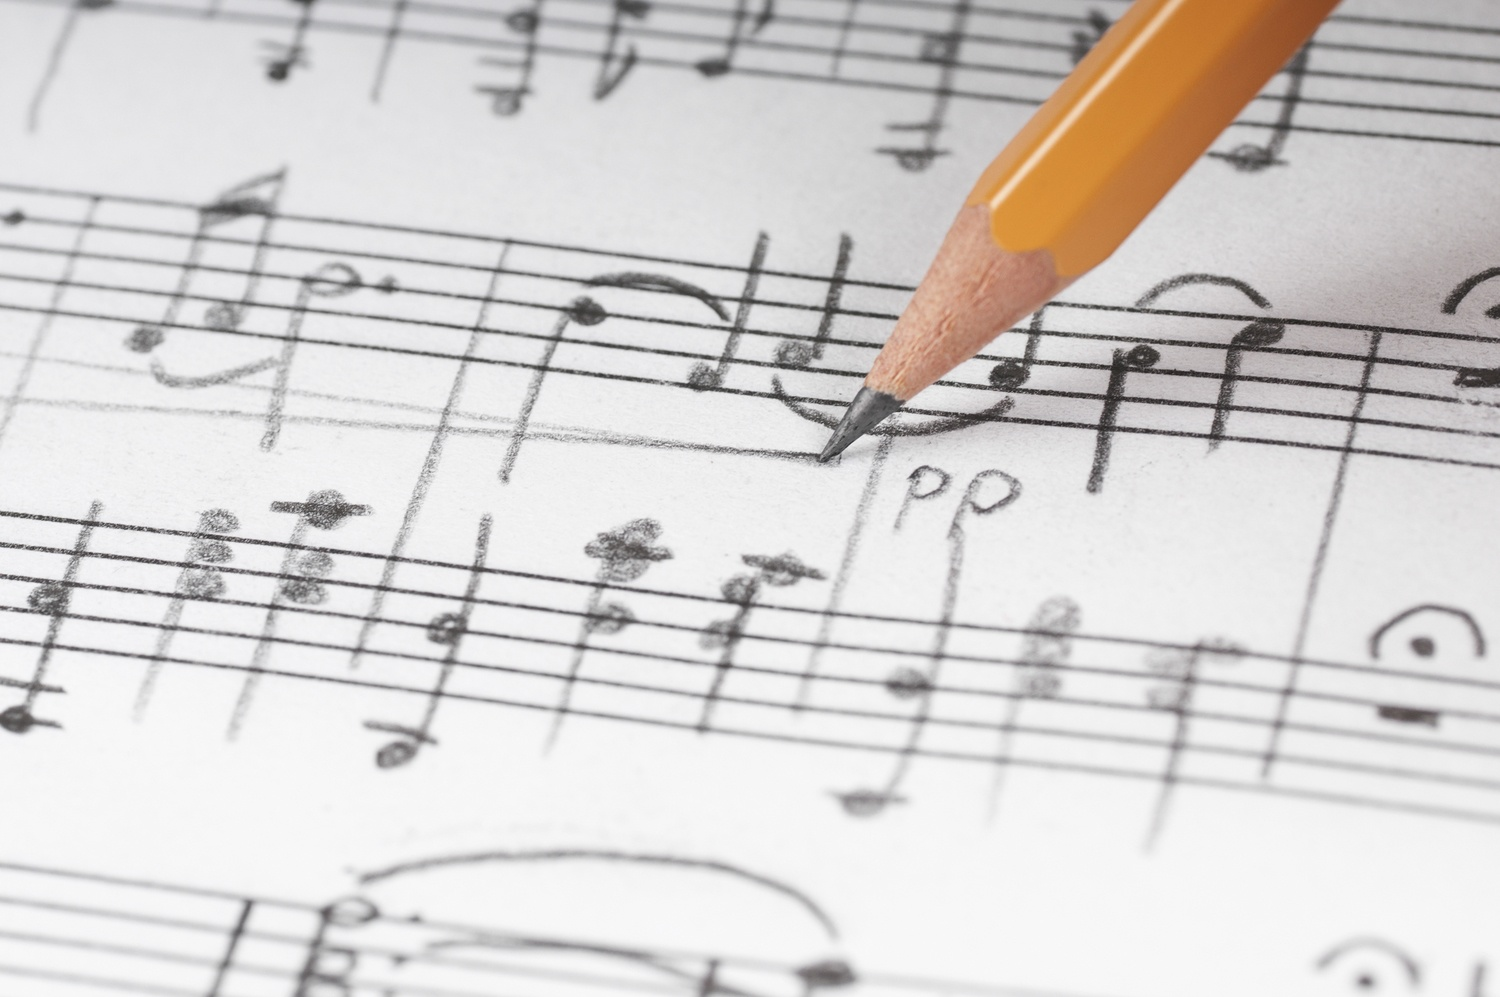 Mark the Musical Notes with a Pencil